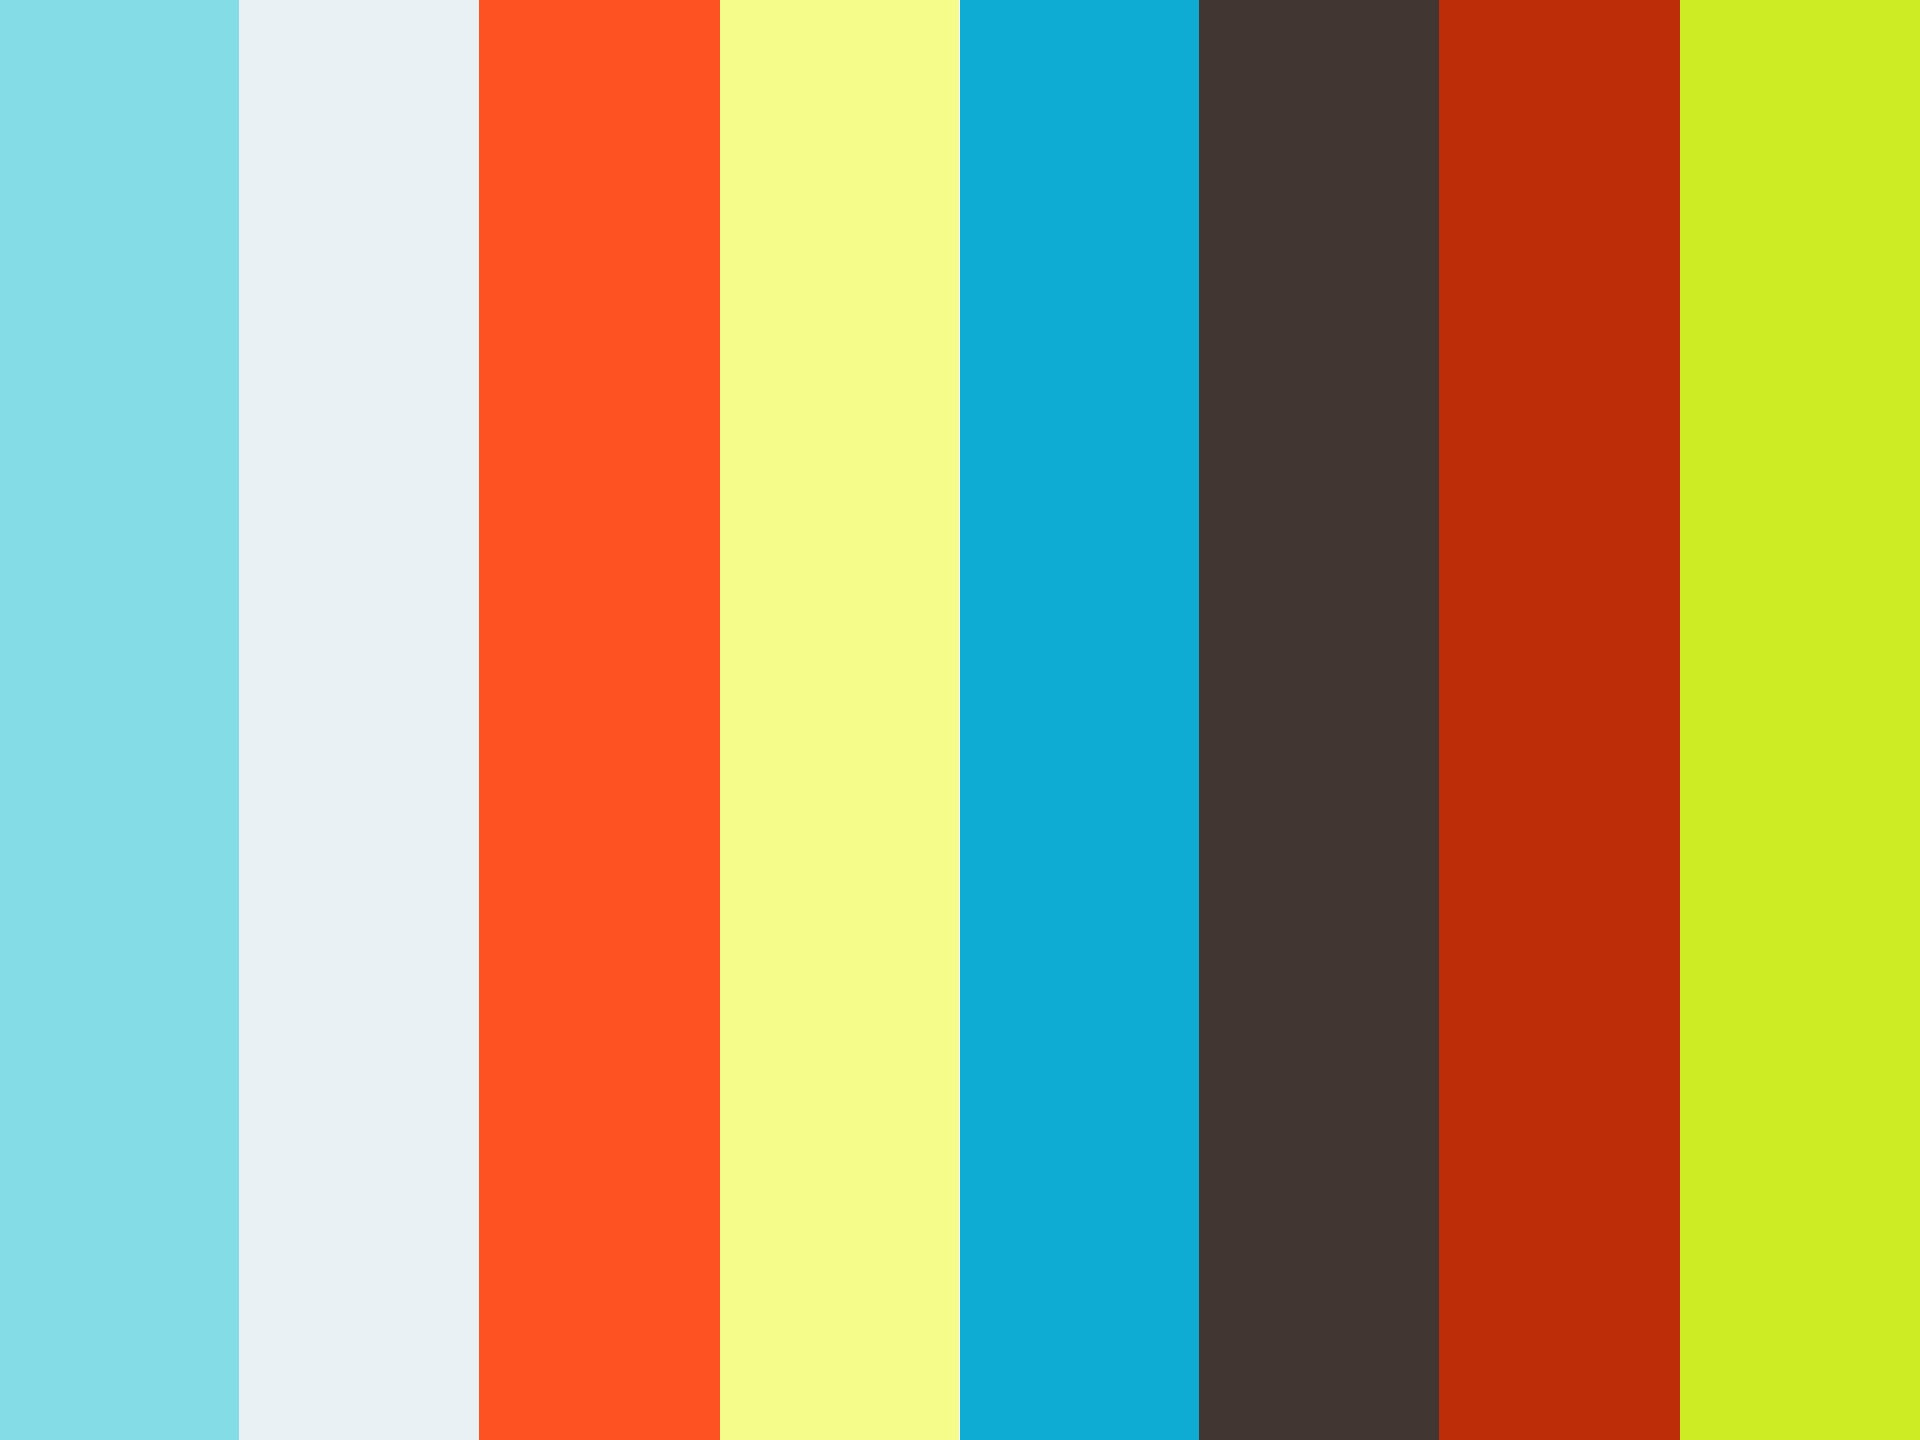 Dr. Boulden talks about the practice philosophy at Atlanta Dental Spa